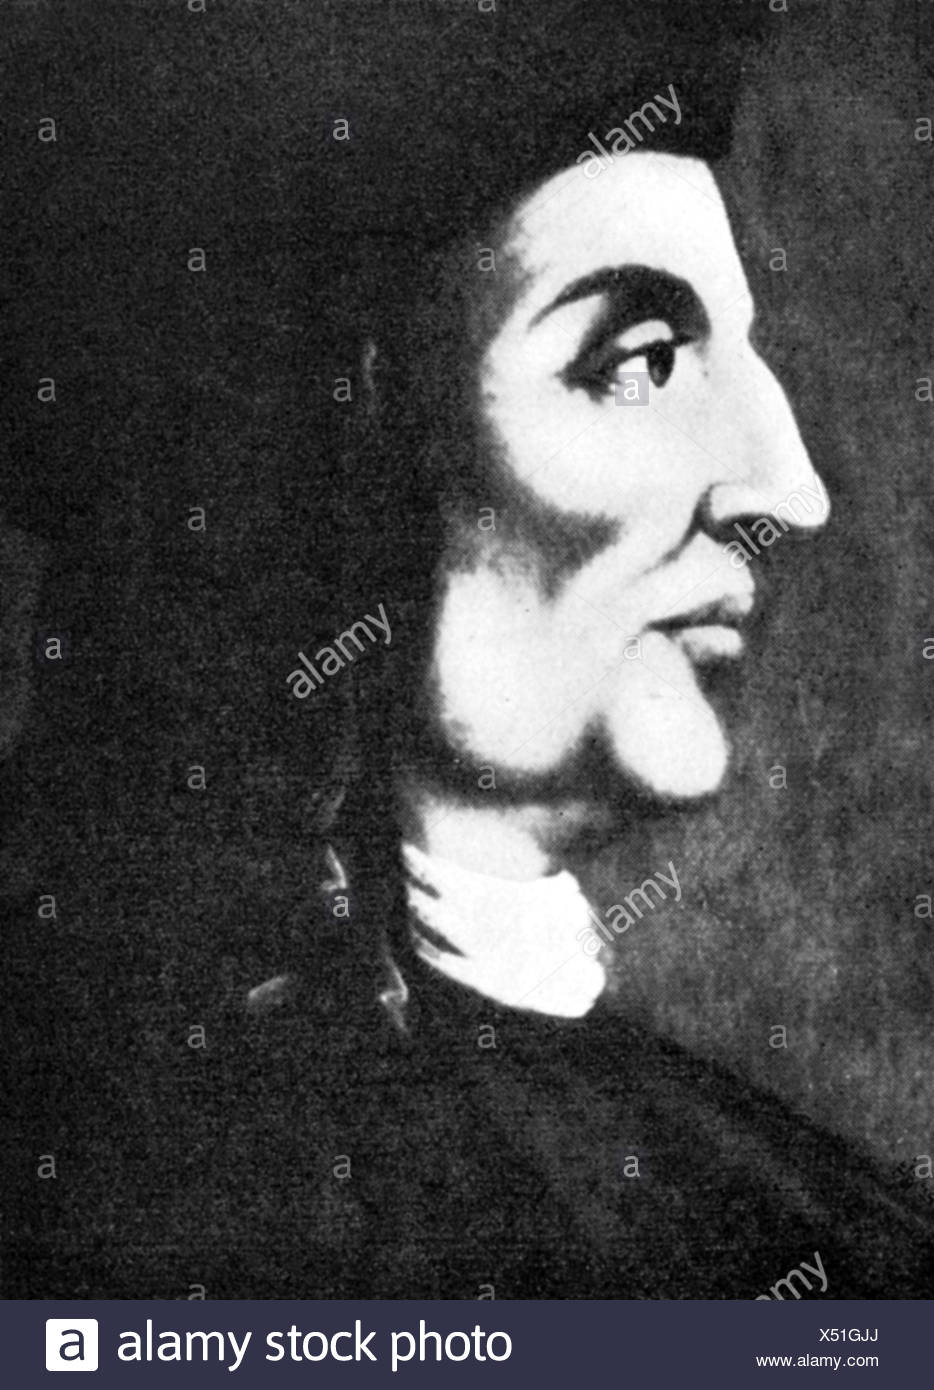 Zarlino, Gioseffo, 22.3.1517 - 14.2.1590, Italian composer, music theorist, portrait, side face, after contemporary image, Additional-Rights-Clearances-NA - Stock Image